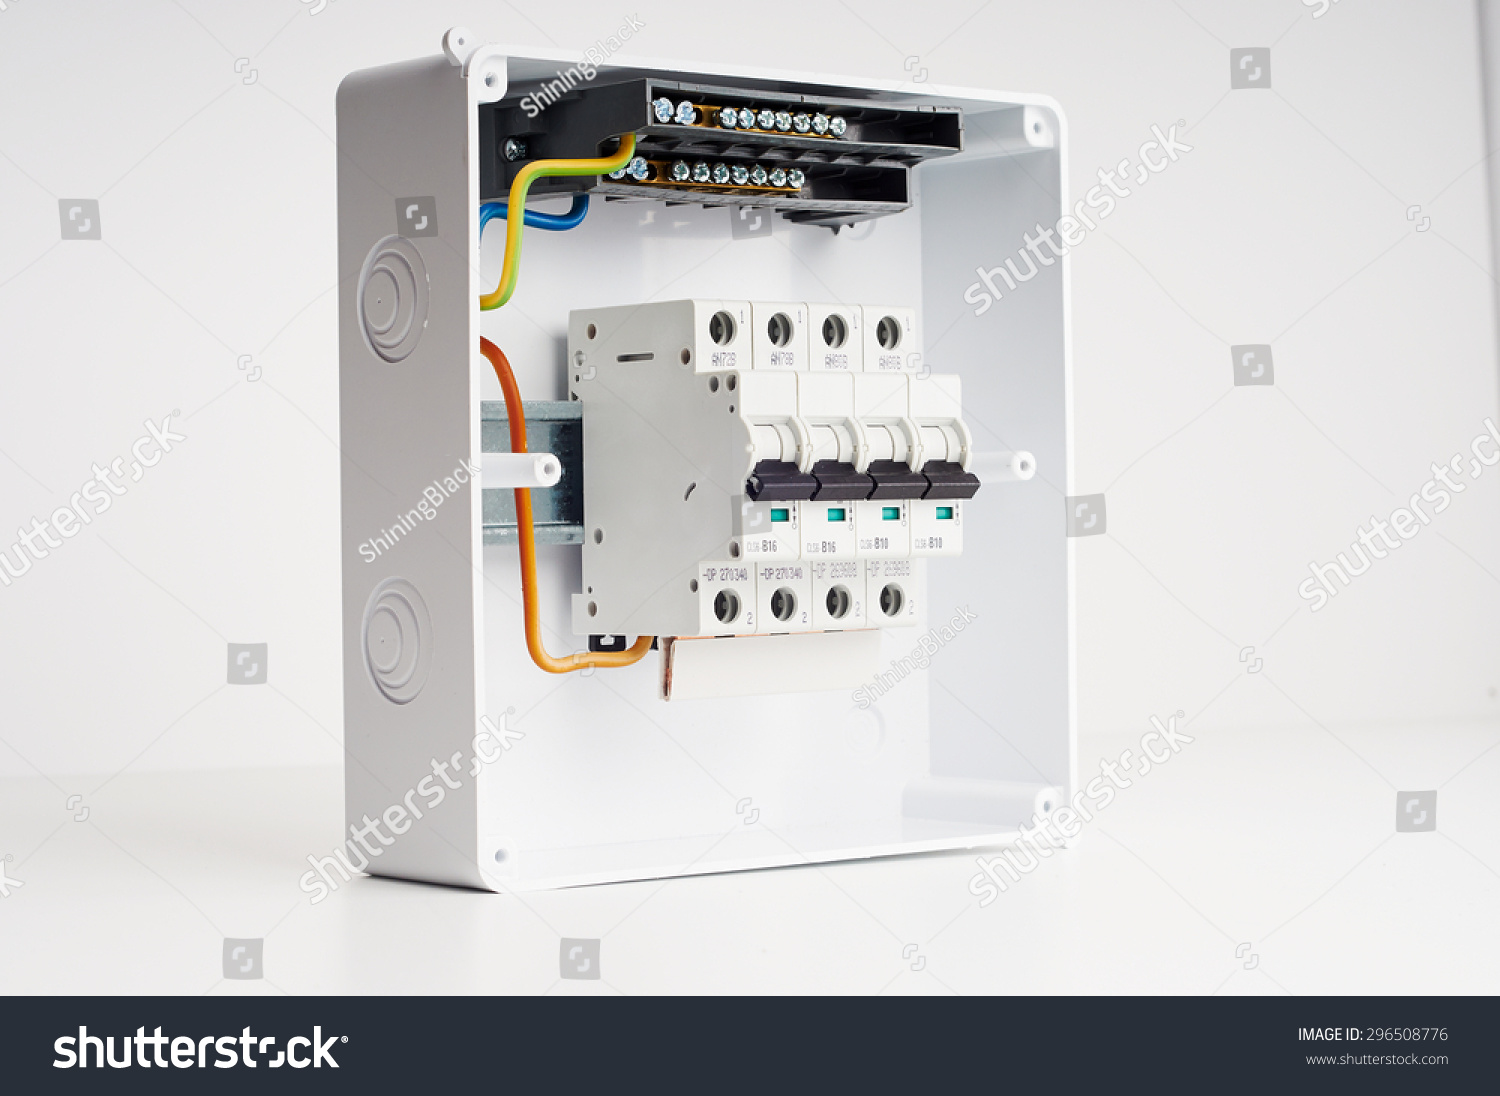 Electrical Cabinet Four Automatic Fuses Wires Stock Photo (Royalty ...